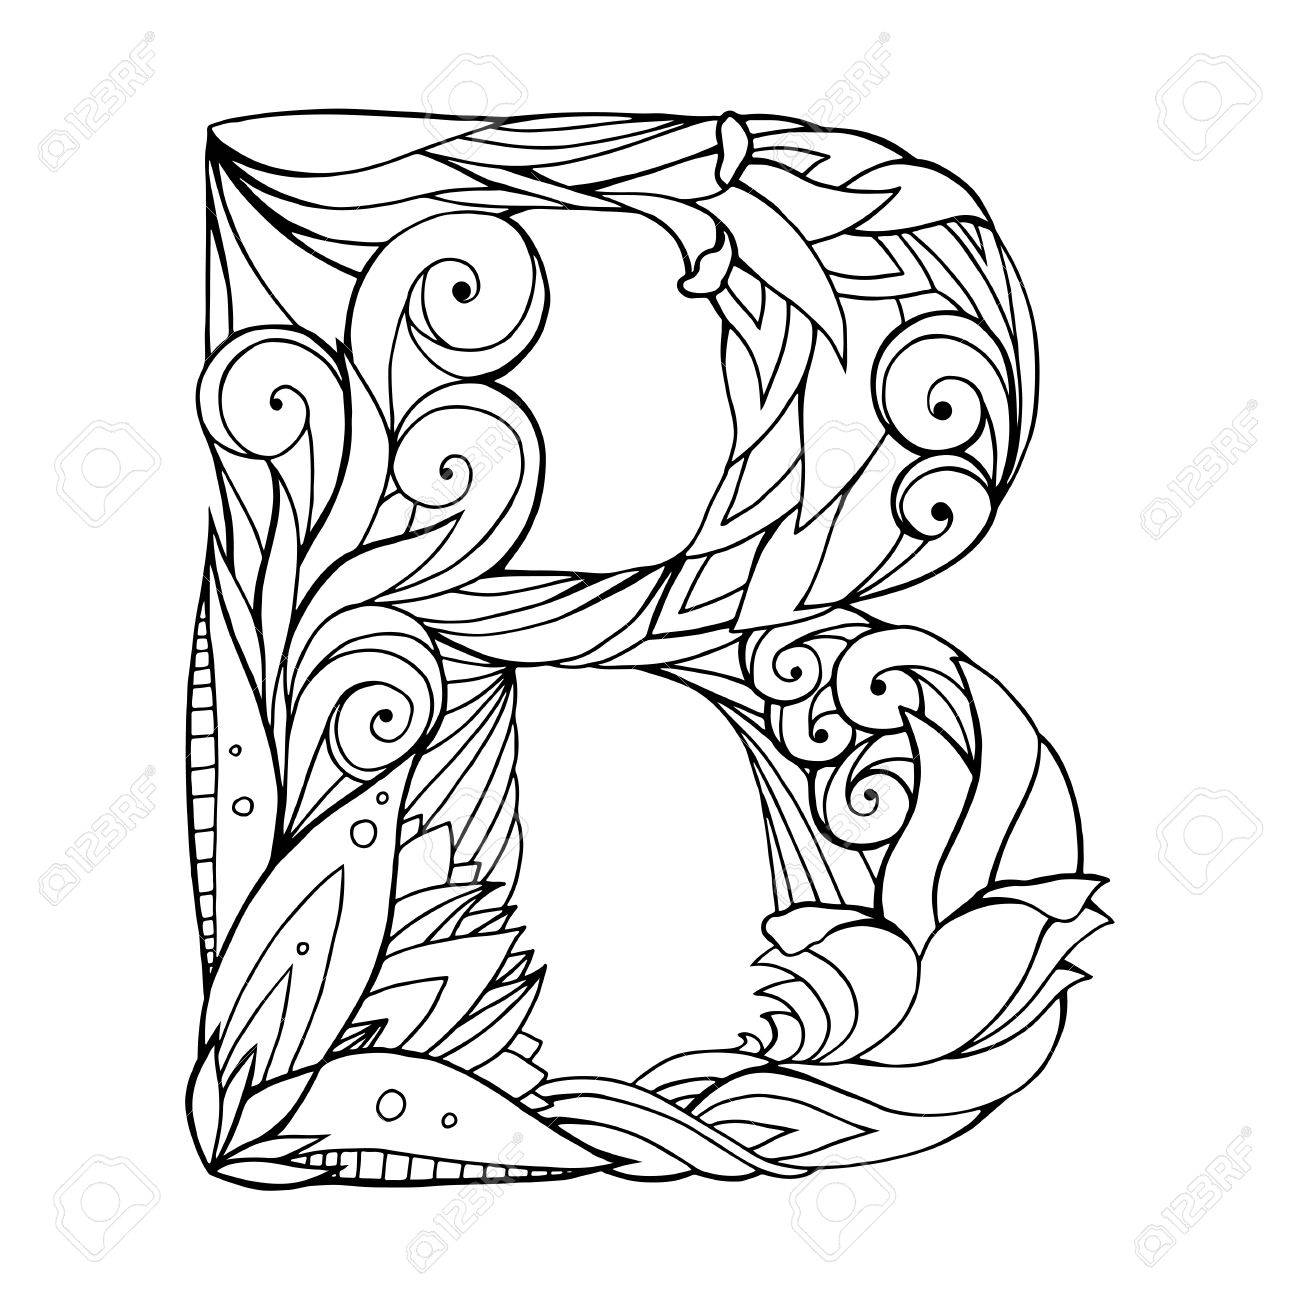 Black And White Freehand Drawing Capital Letter B With Floral